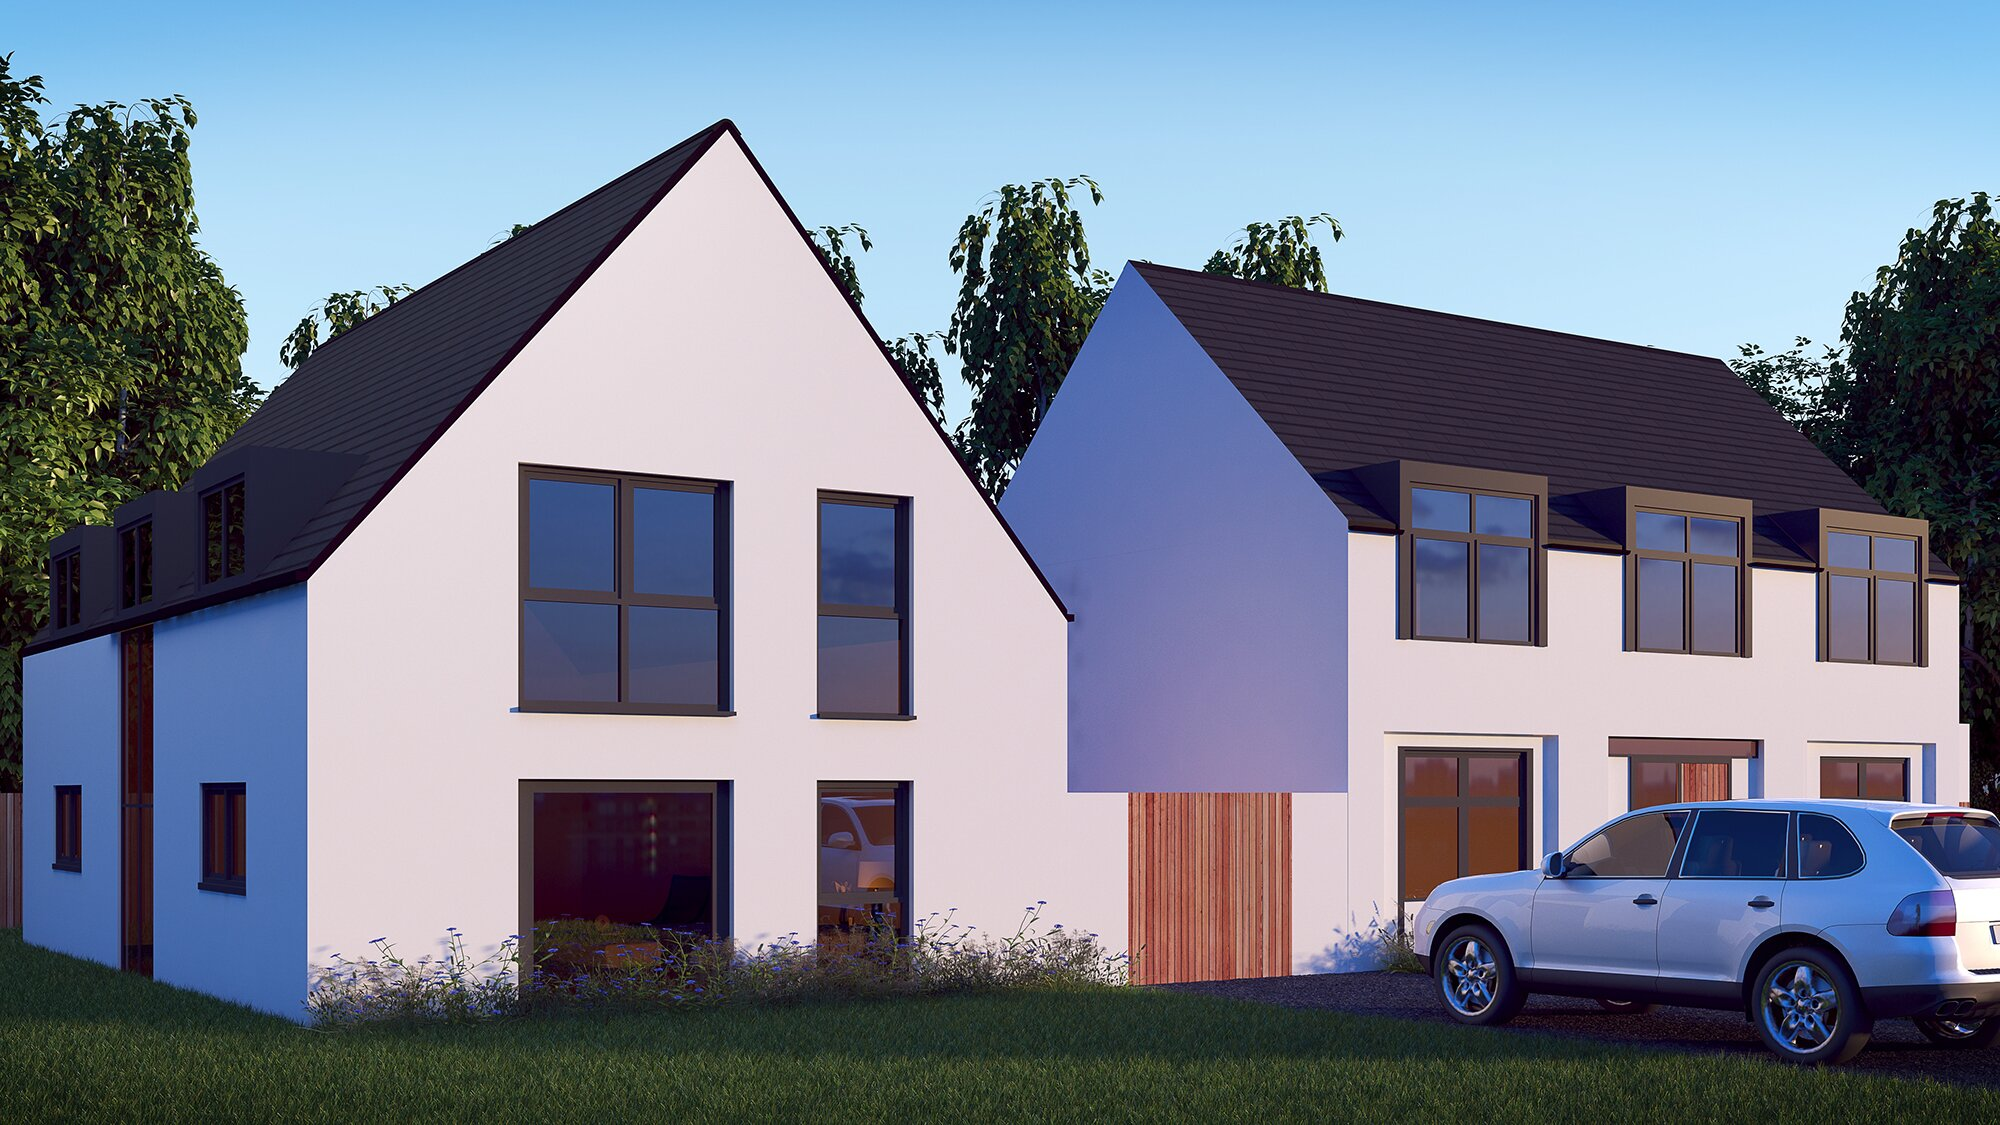 Cambridge (Leys Road) Residential Development Stage 2 Loan - Junior Tranche